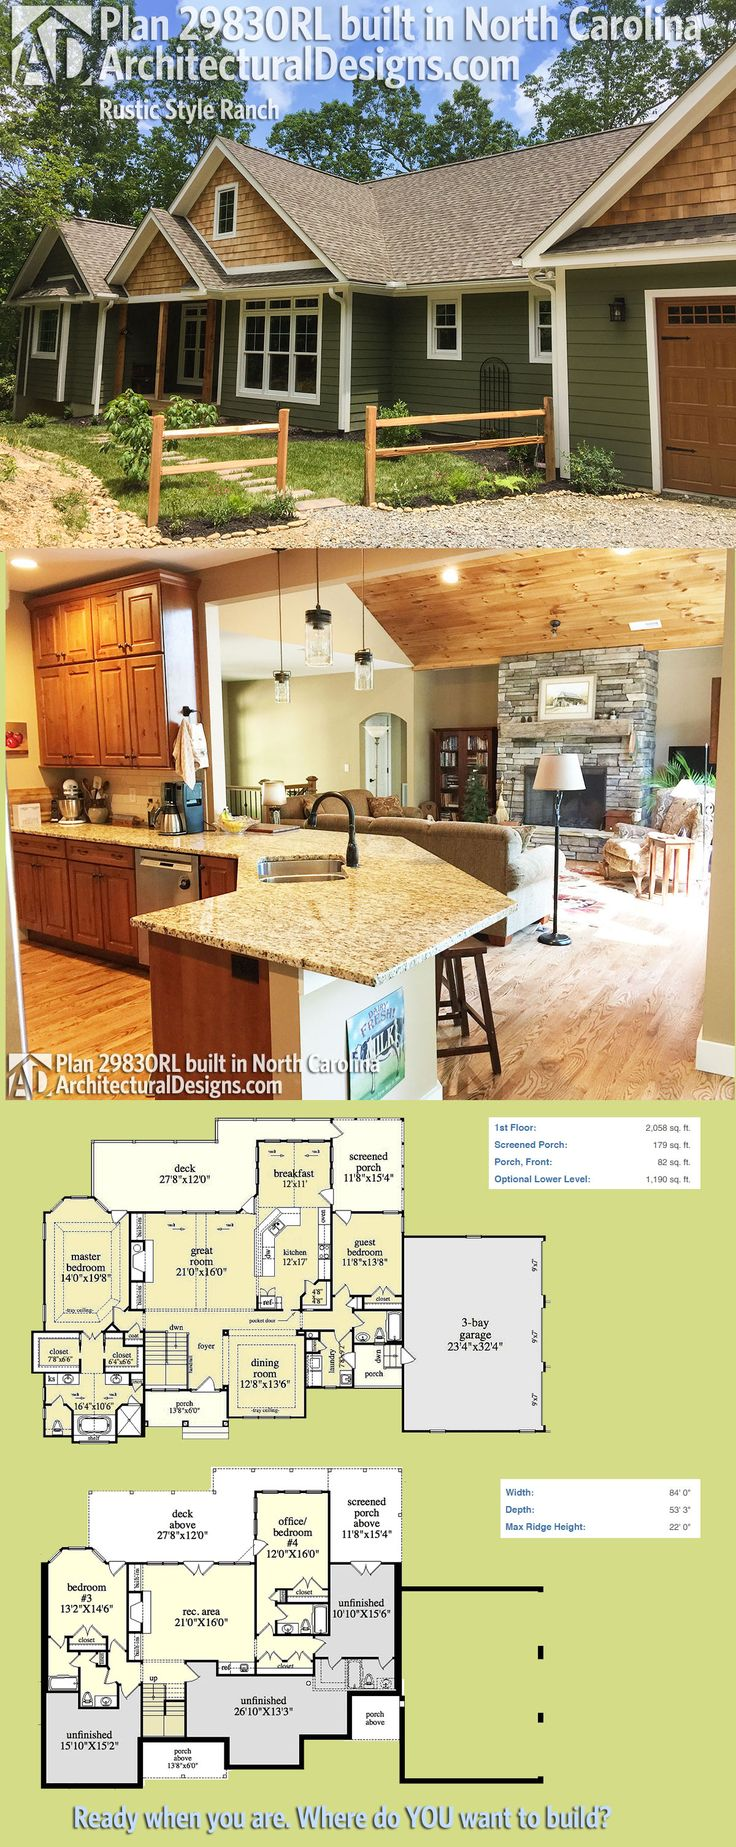 best 20 ranch house plans ideas on pinterest ranch floor plans architectural designs rustic ranch house plan 29830rl was built by our client in north carolina with